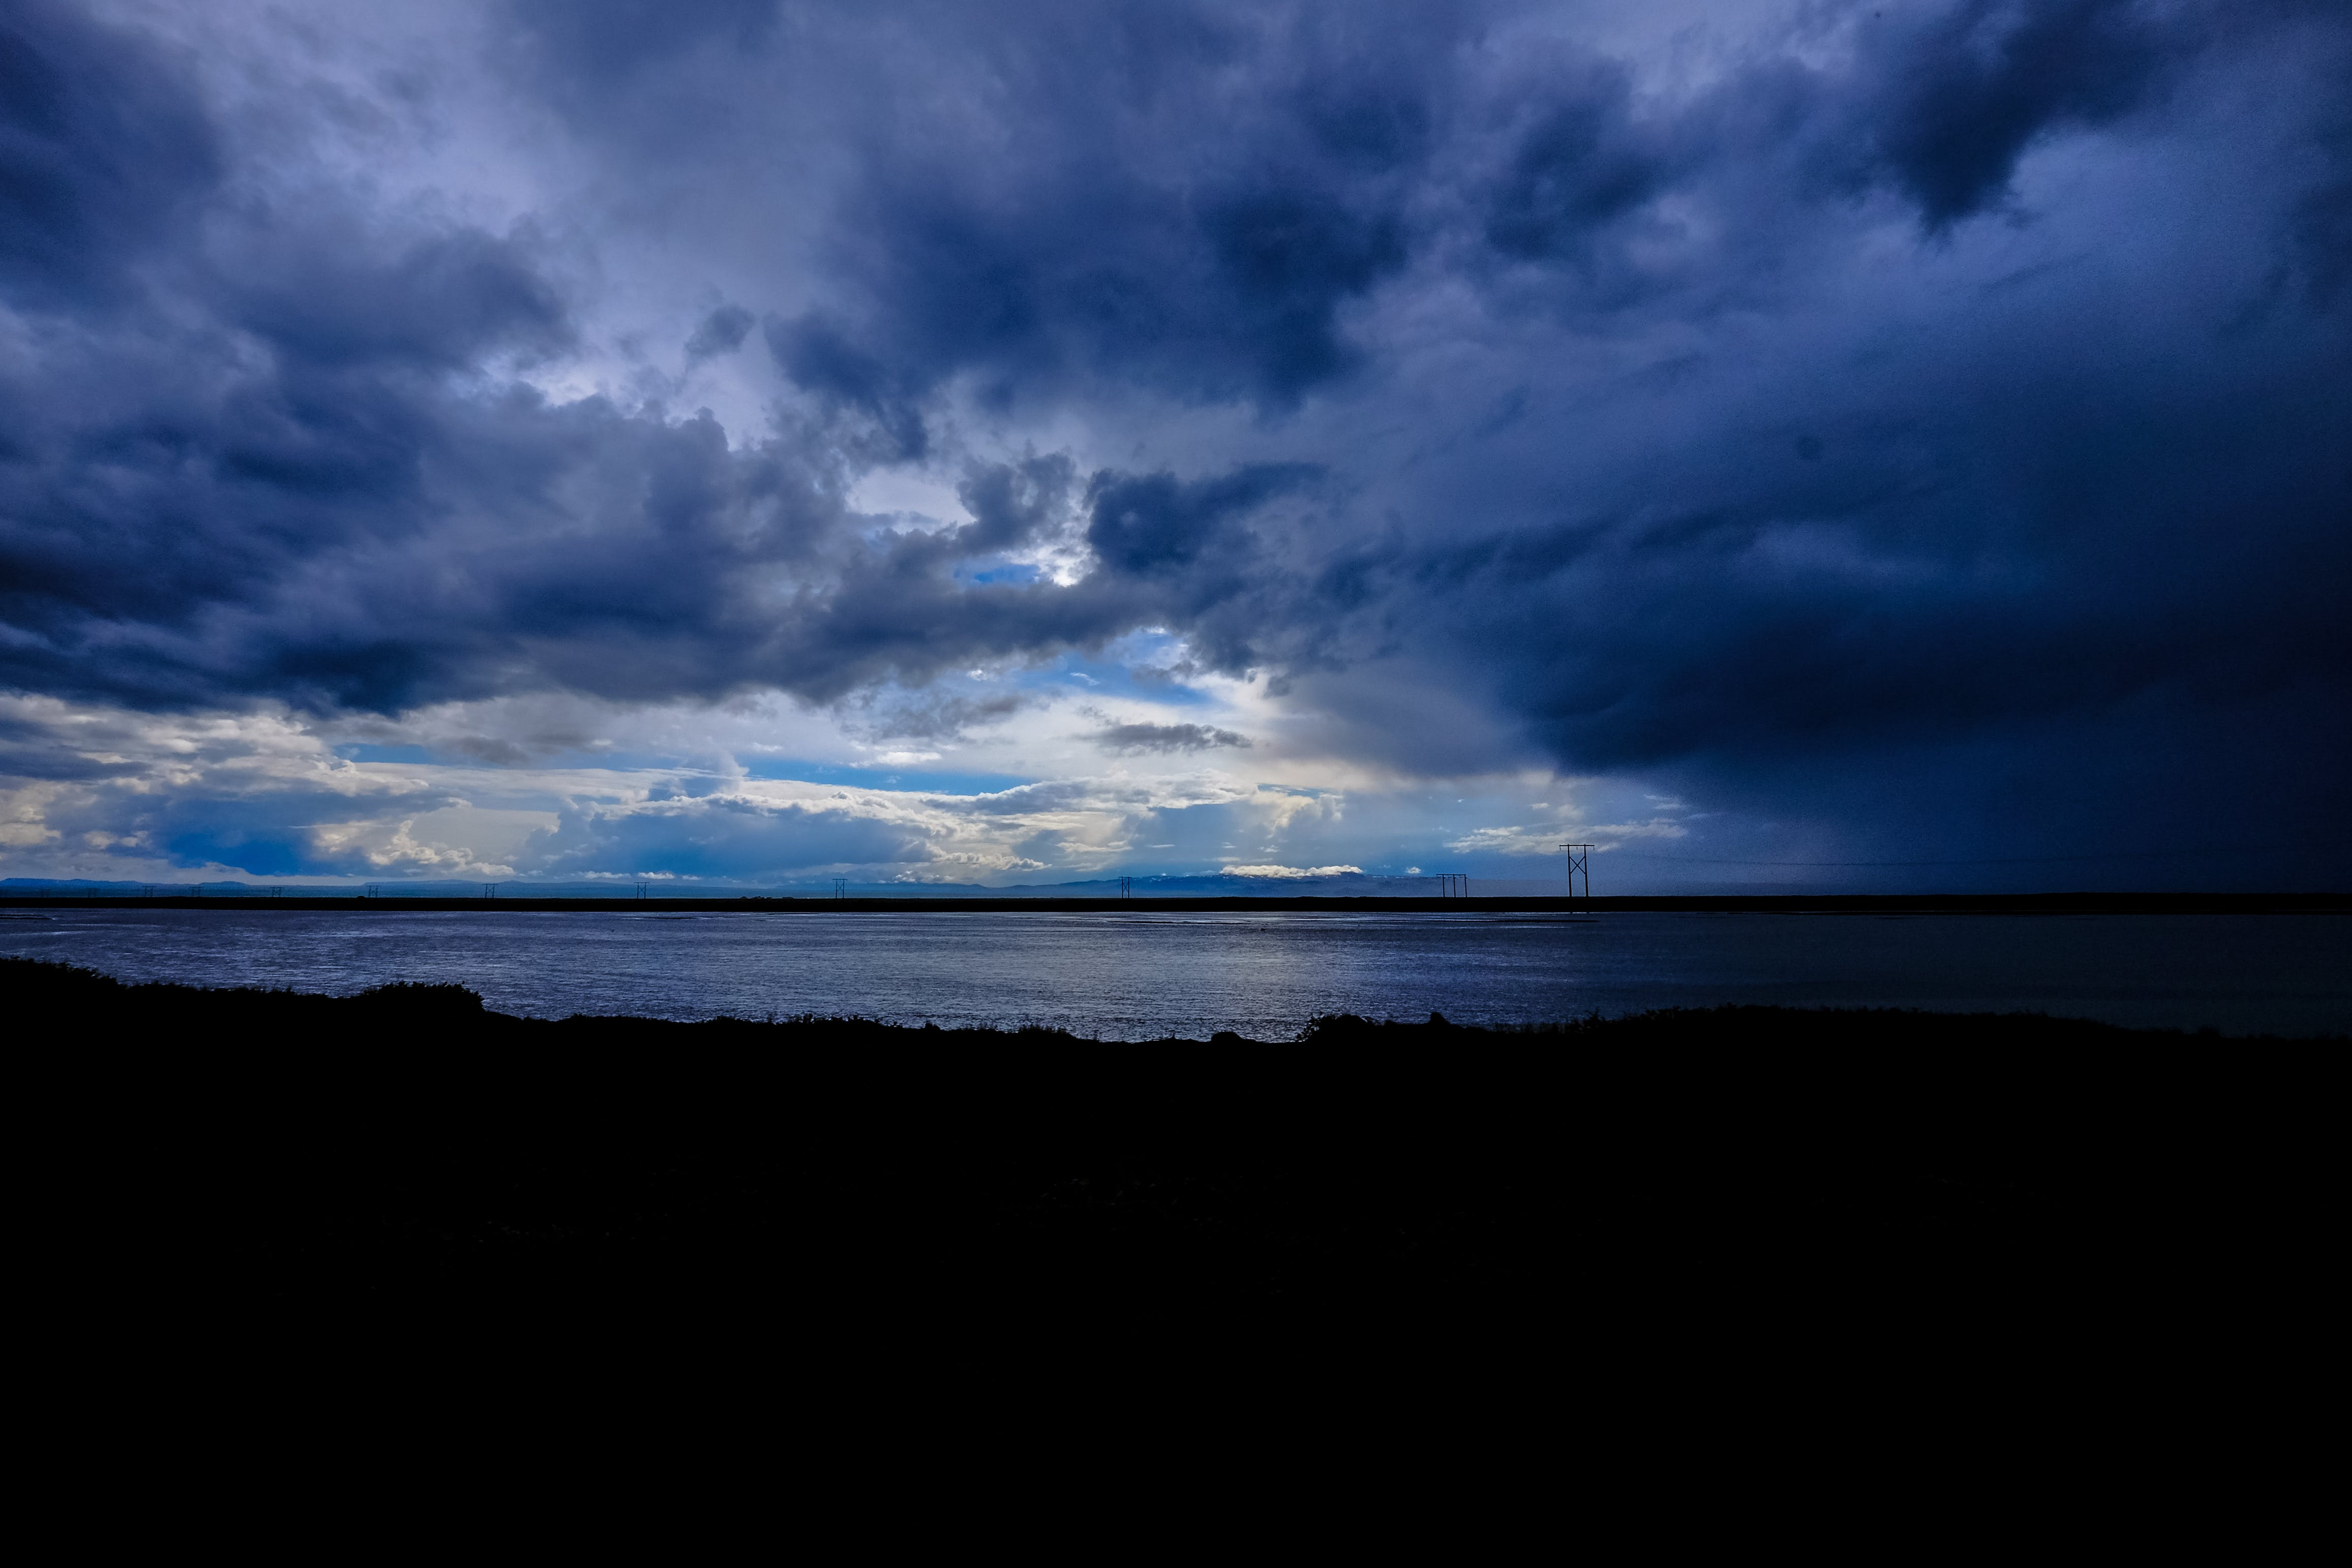 Silhouette Photo of Body of Water Under Thick Gray Clouds